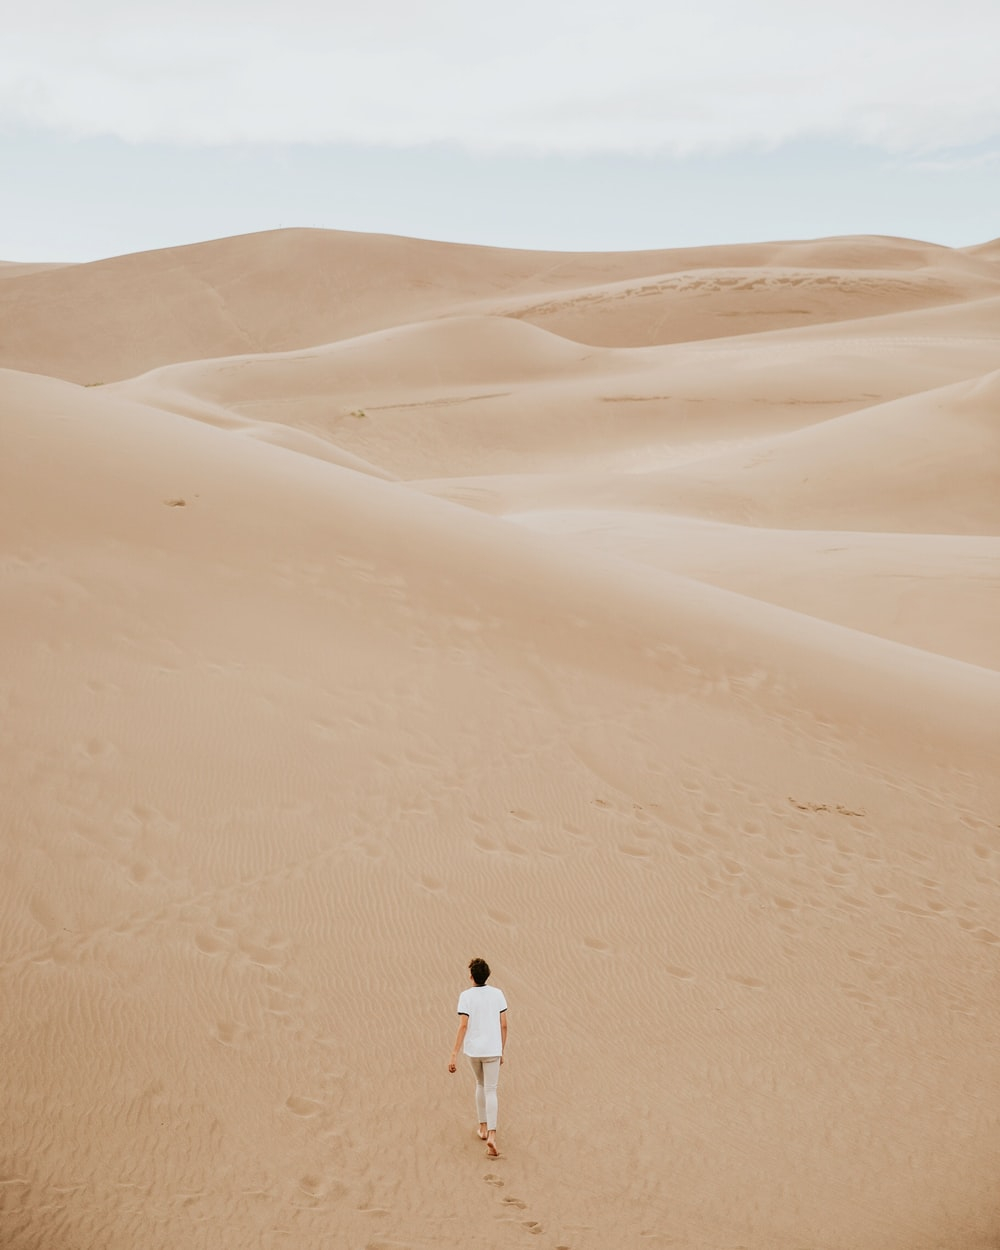 person walking on sand dune